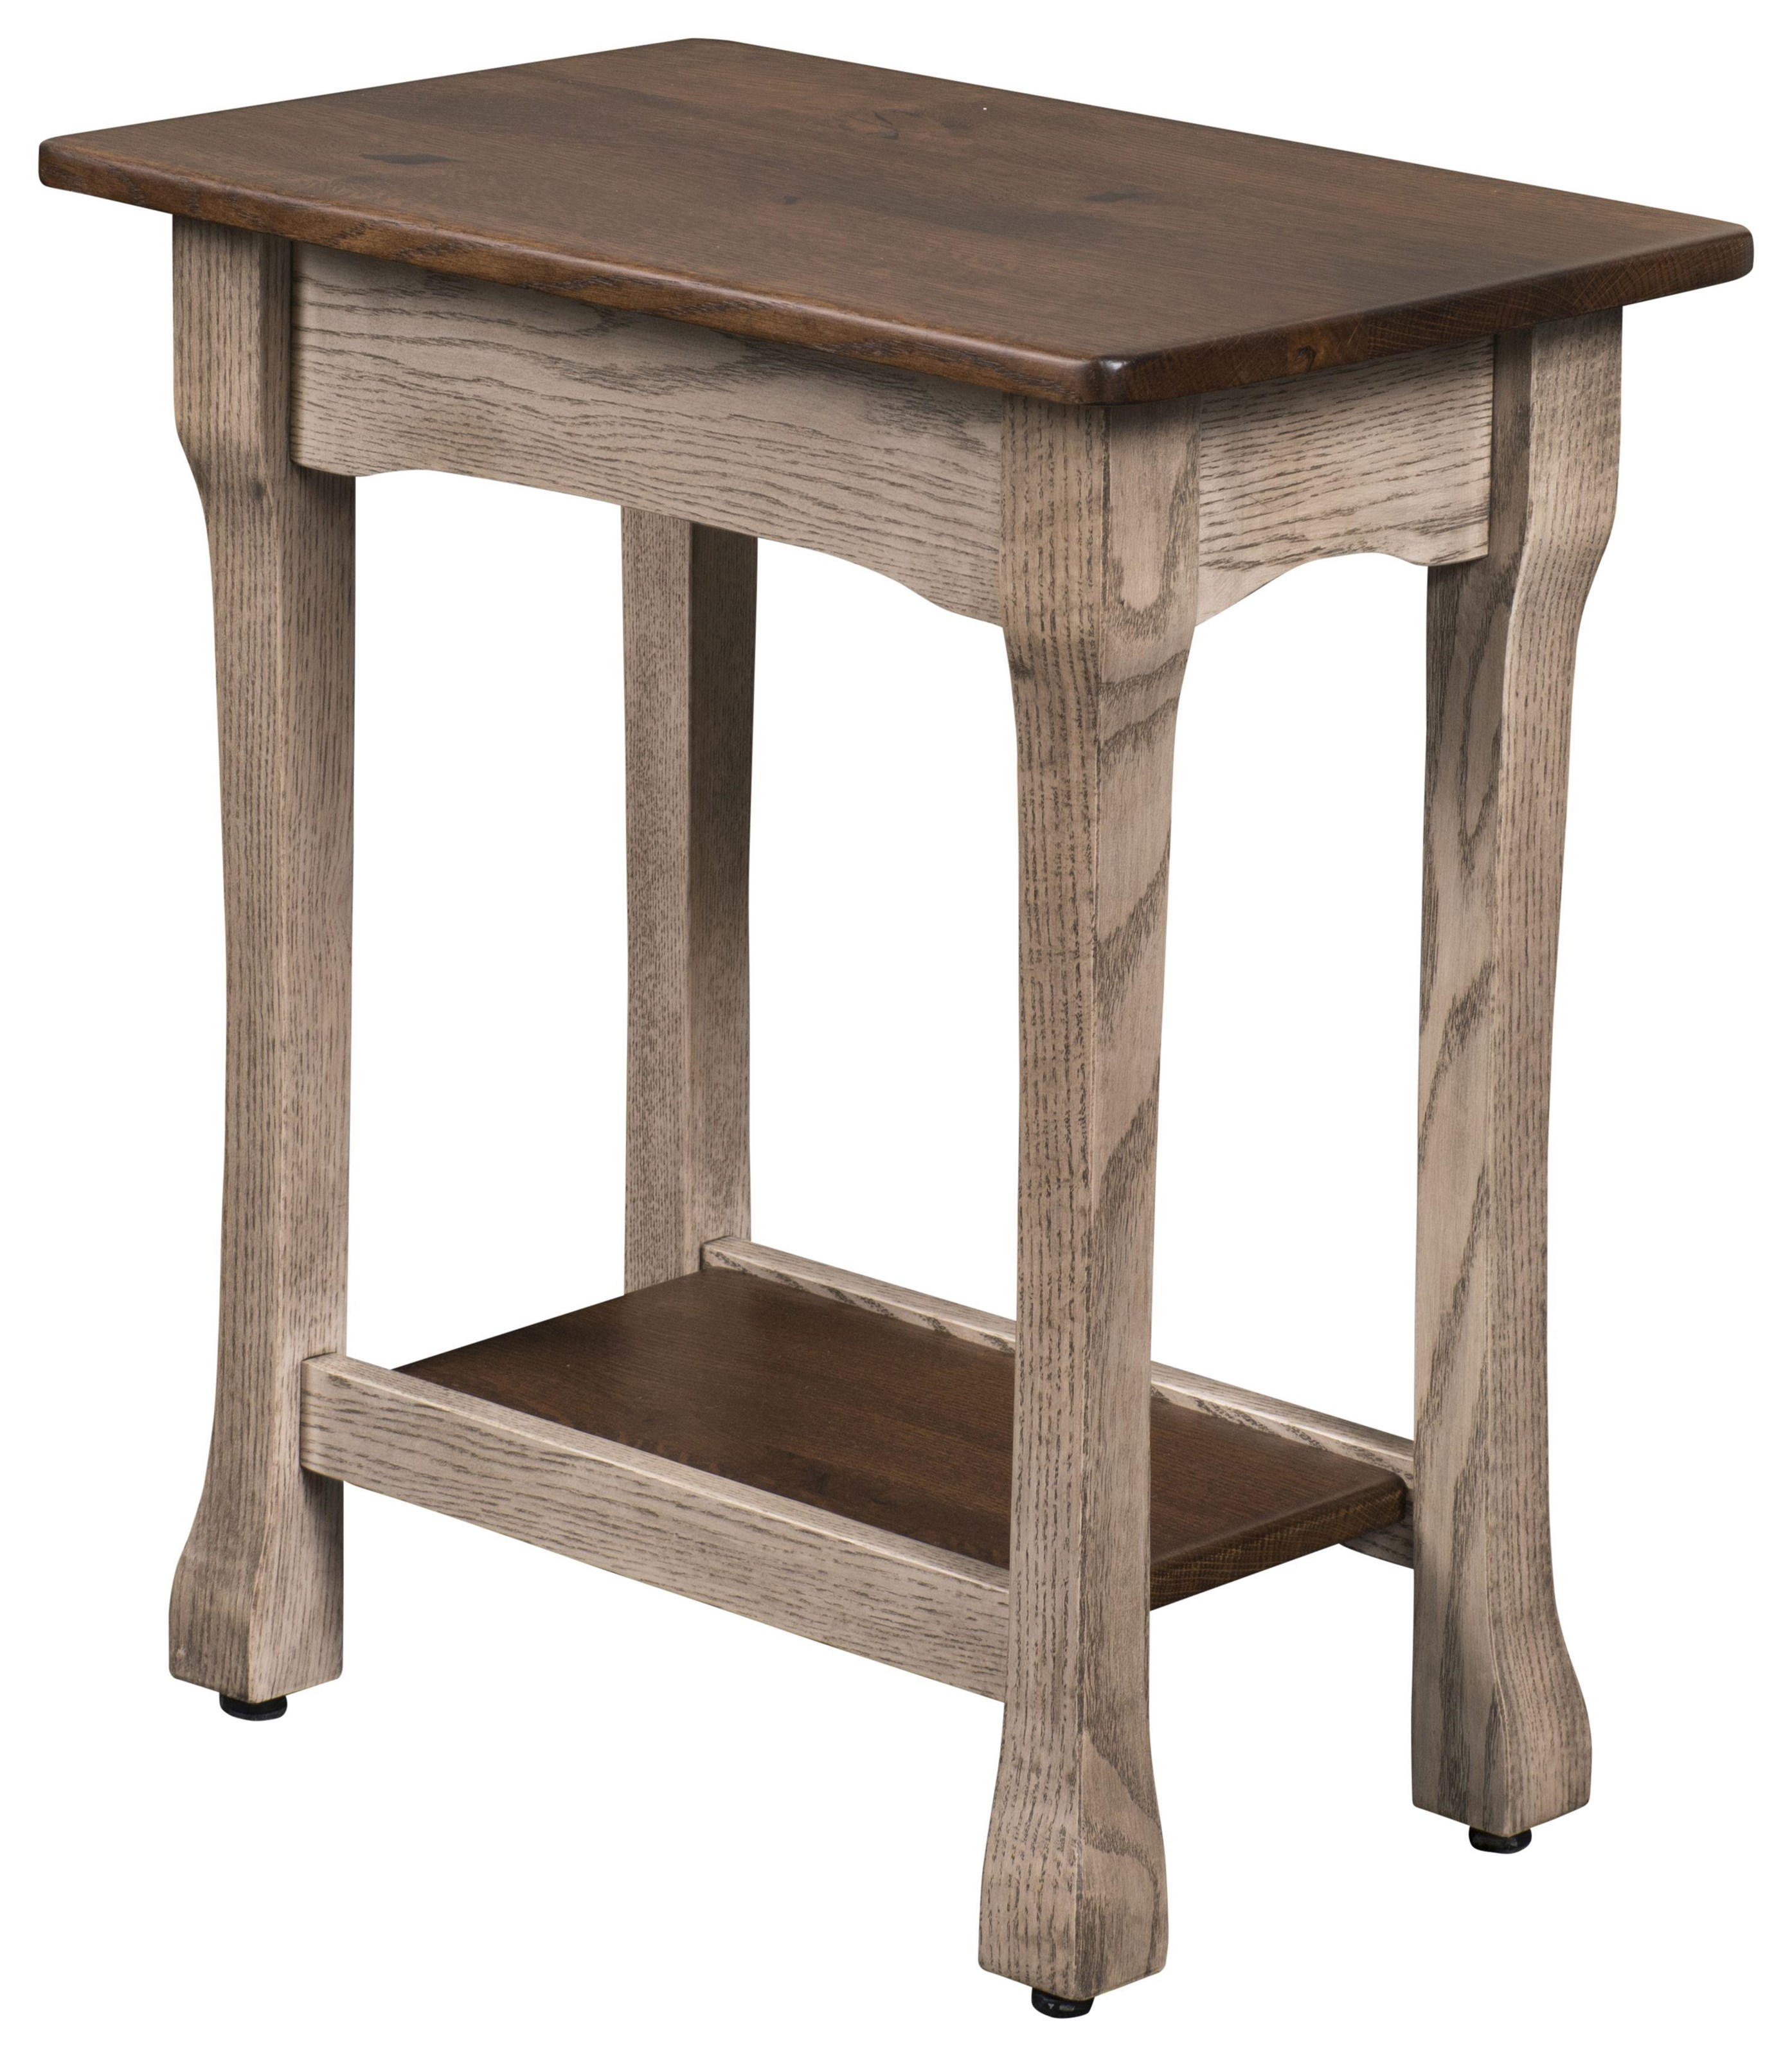 Fairfield Chairside Table by Wayside Custom Furniture at Wayside Furniture